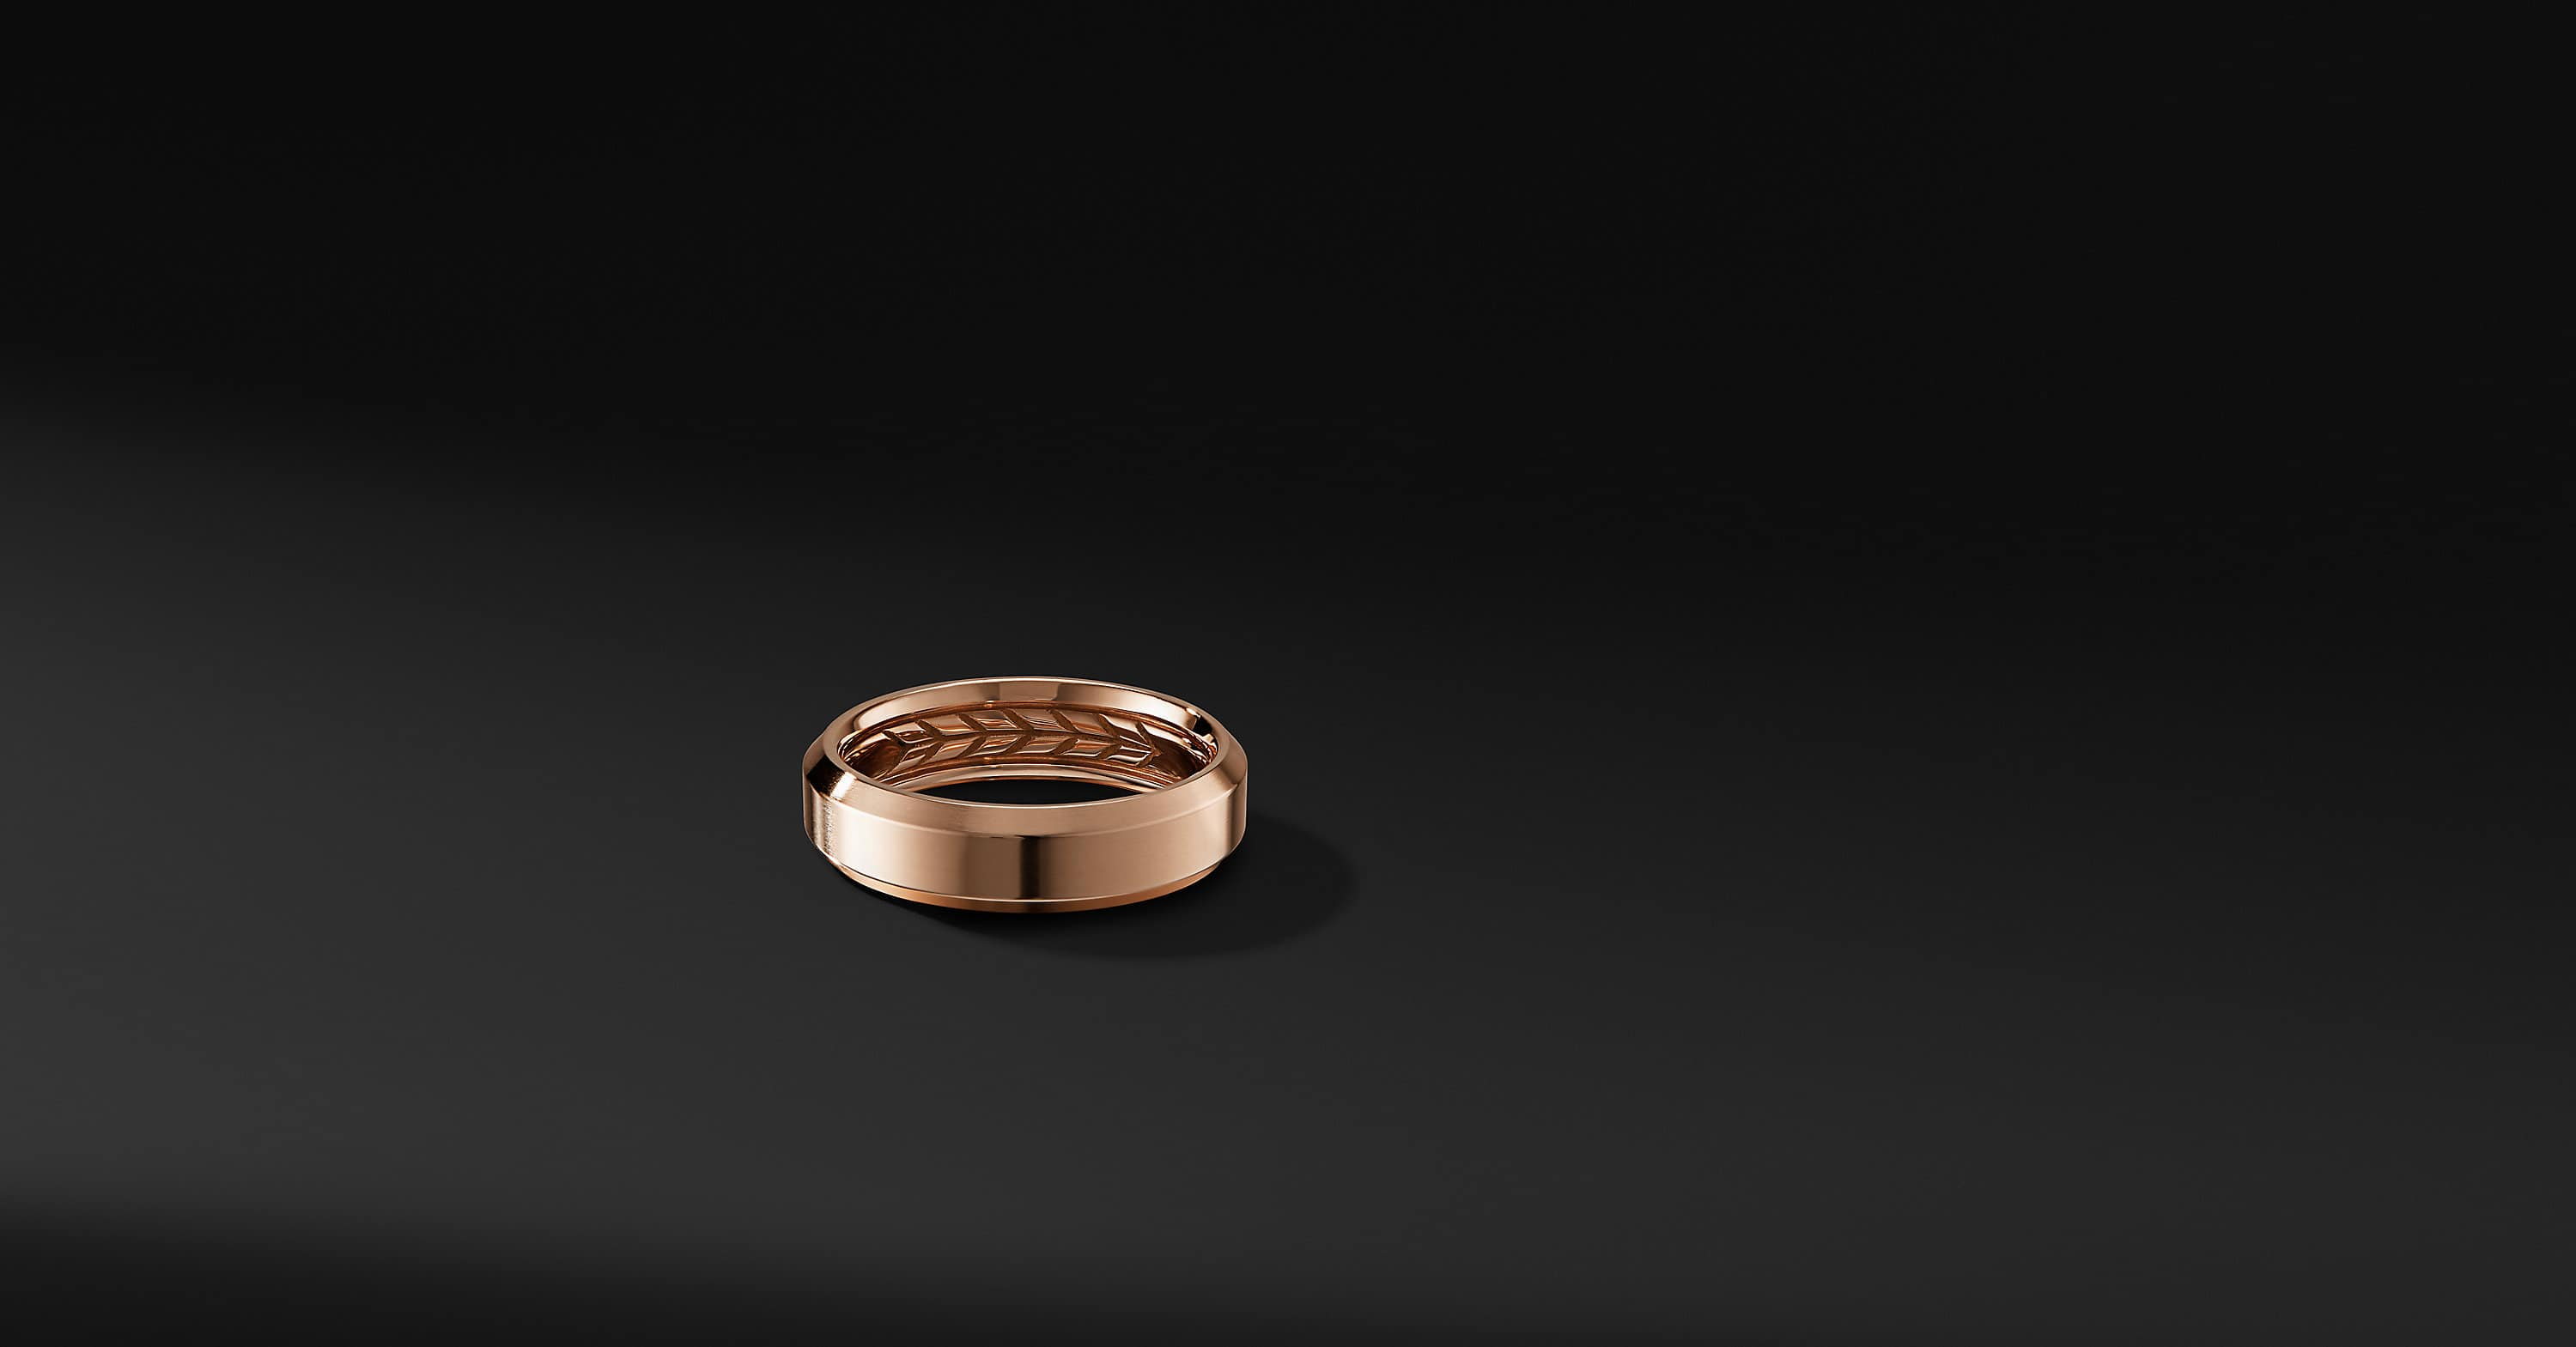 Beveled Band Ring in 18K Rose Gold, 6mm